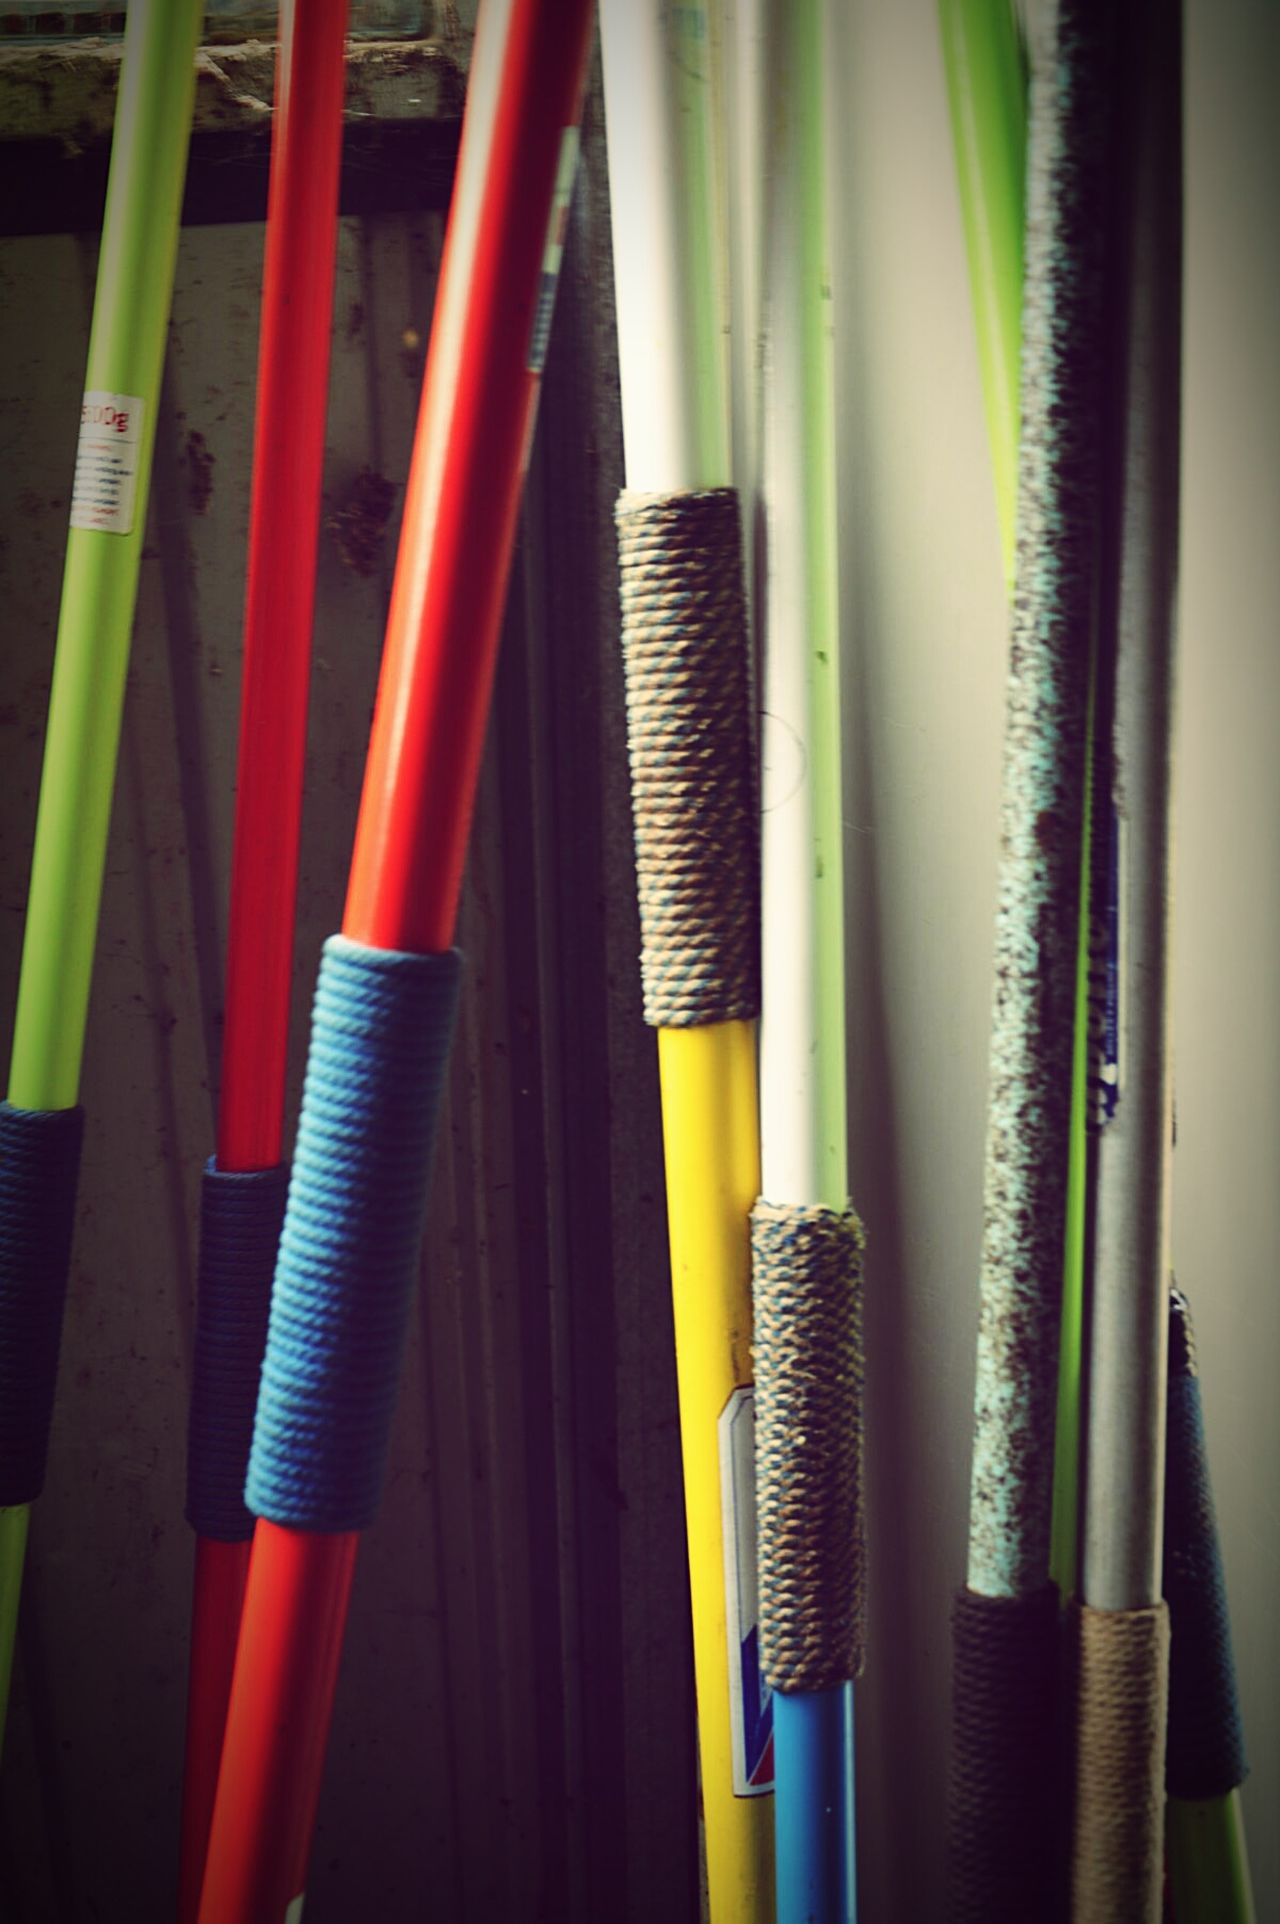 Vecchia Atletica... giavellotti Variation In A Row Multi Colored Group Of Objects Blue Slanted Close-up No People lancie magazino